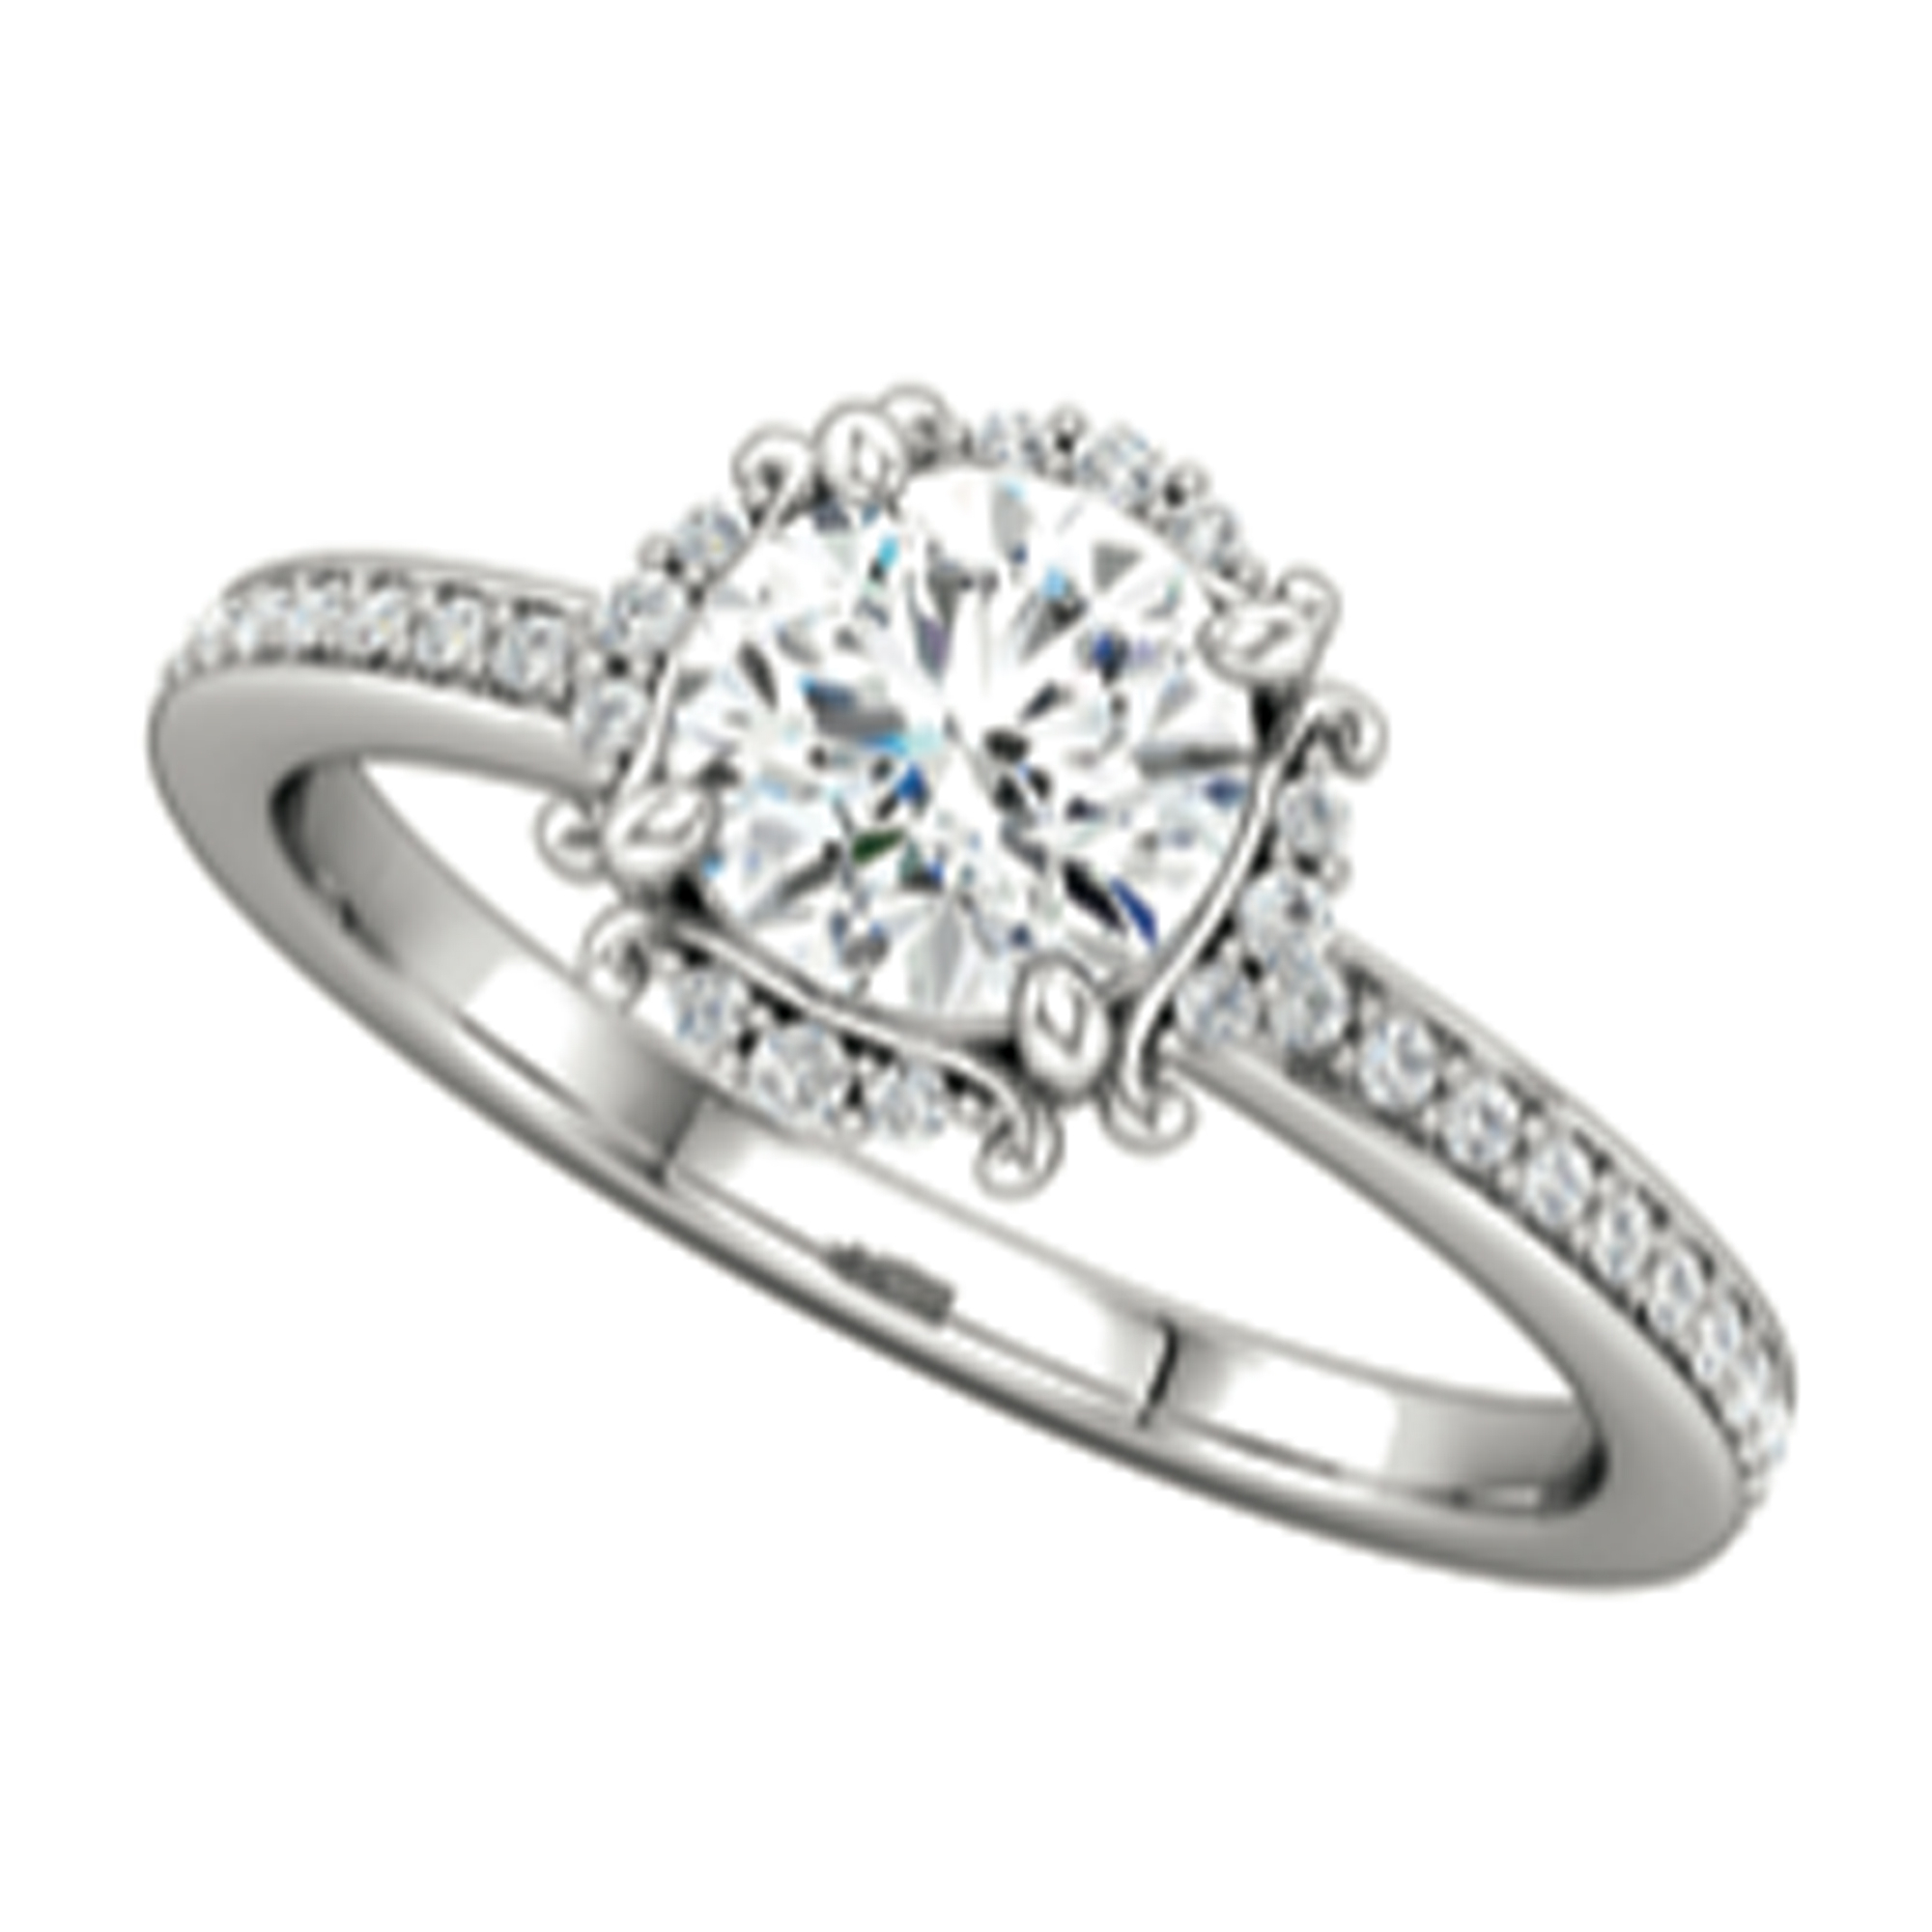 Sparkle Cut Diamonds – Scalloped Halo Engagement Ring | Platinum For Most Up To Date Sparkling Square Halo Rings (View 8 of 25)